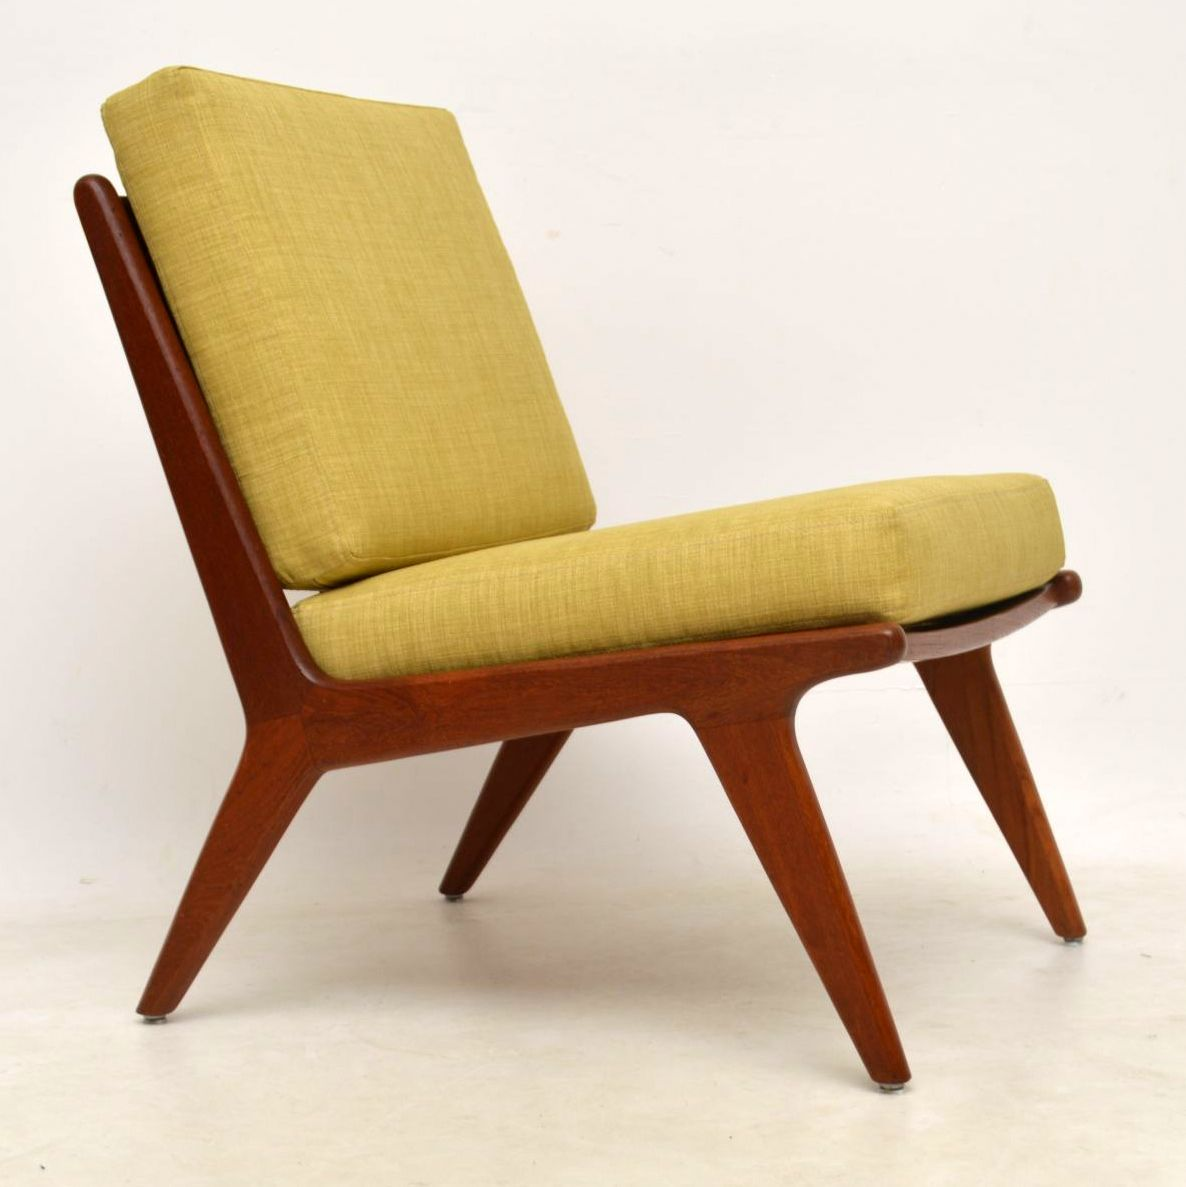 1960's Danish Teak Vintage Slipper Chair - 1960's Danish Teak Vintage Slipper Chair Interior Boutiques